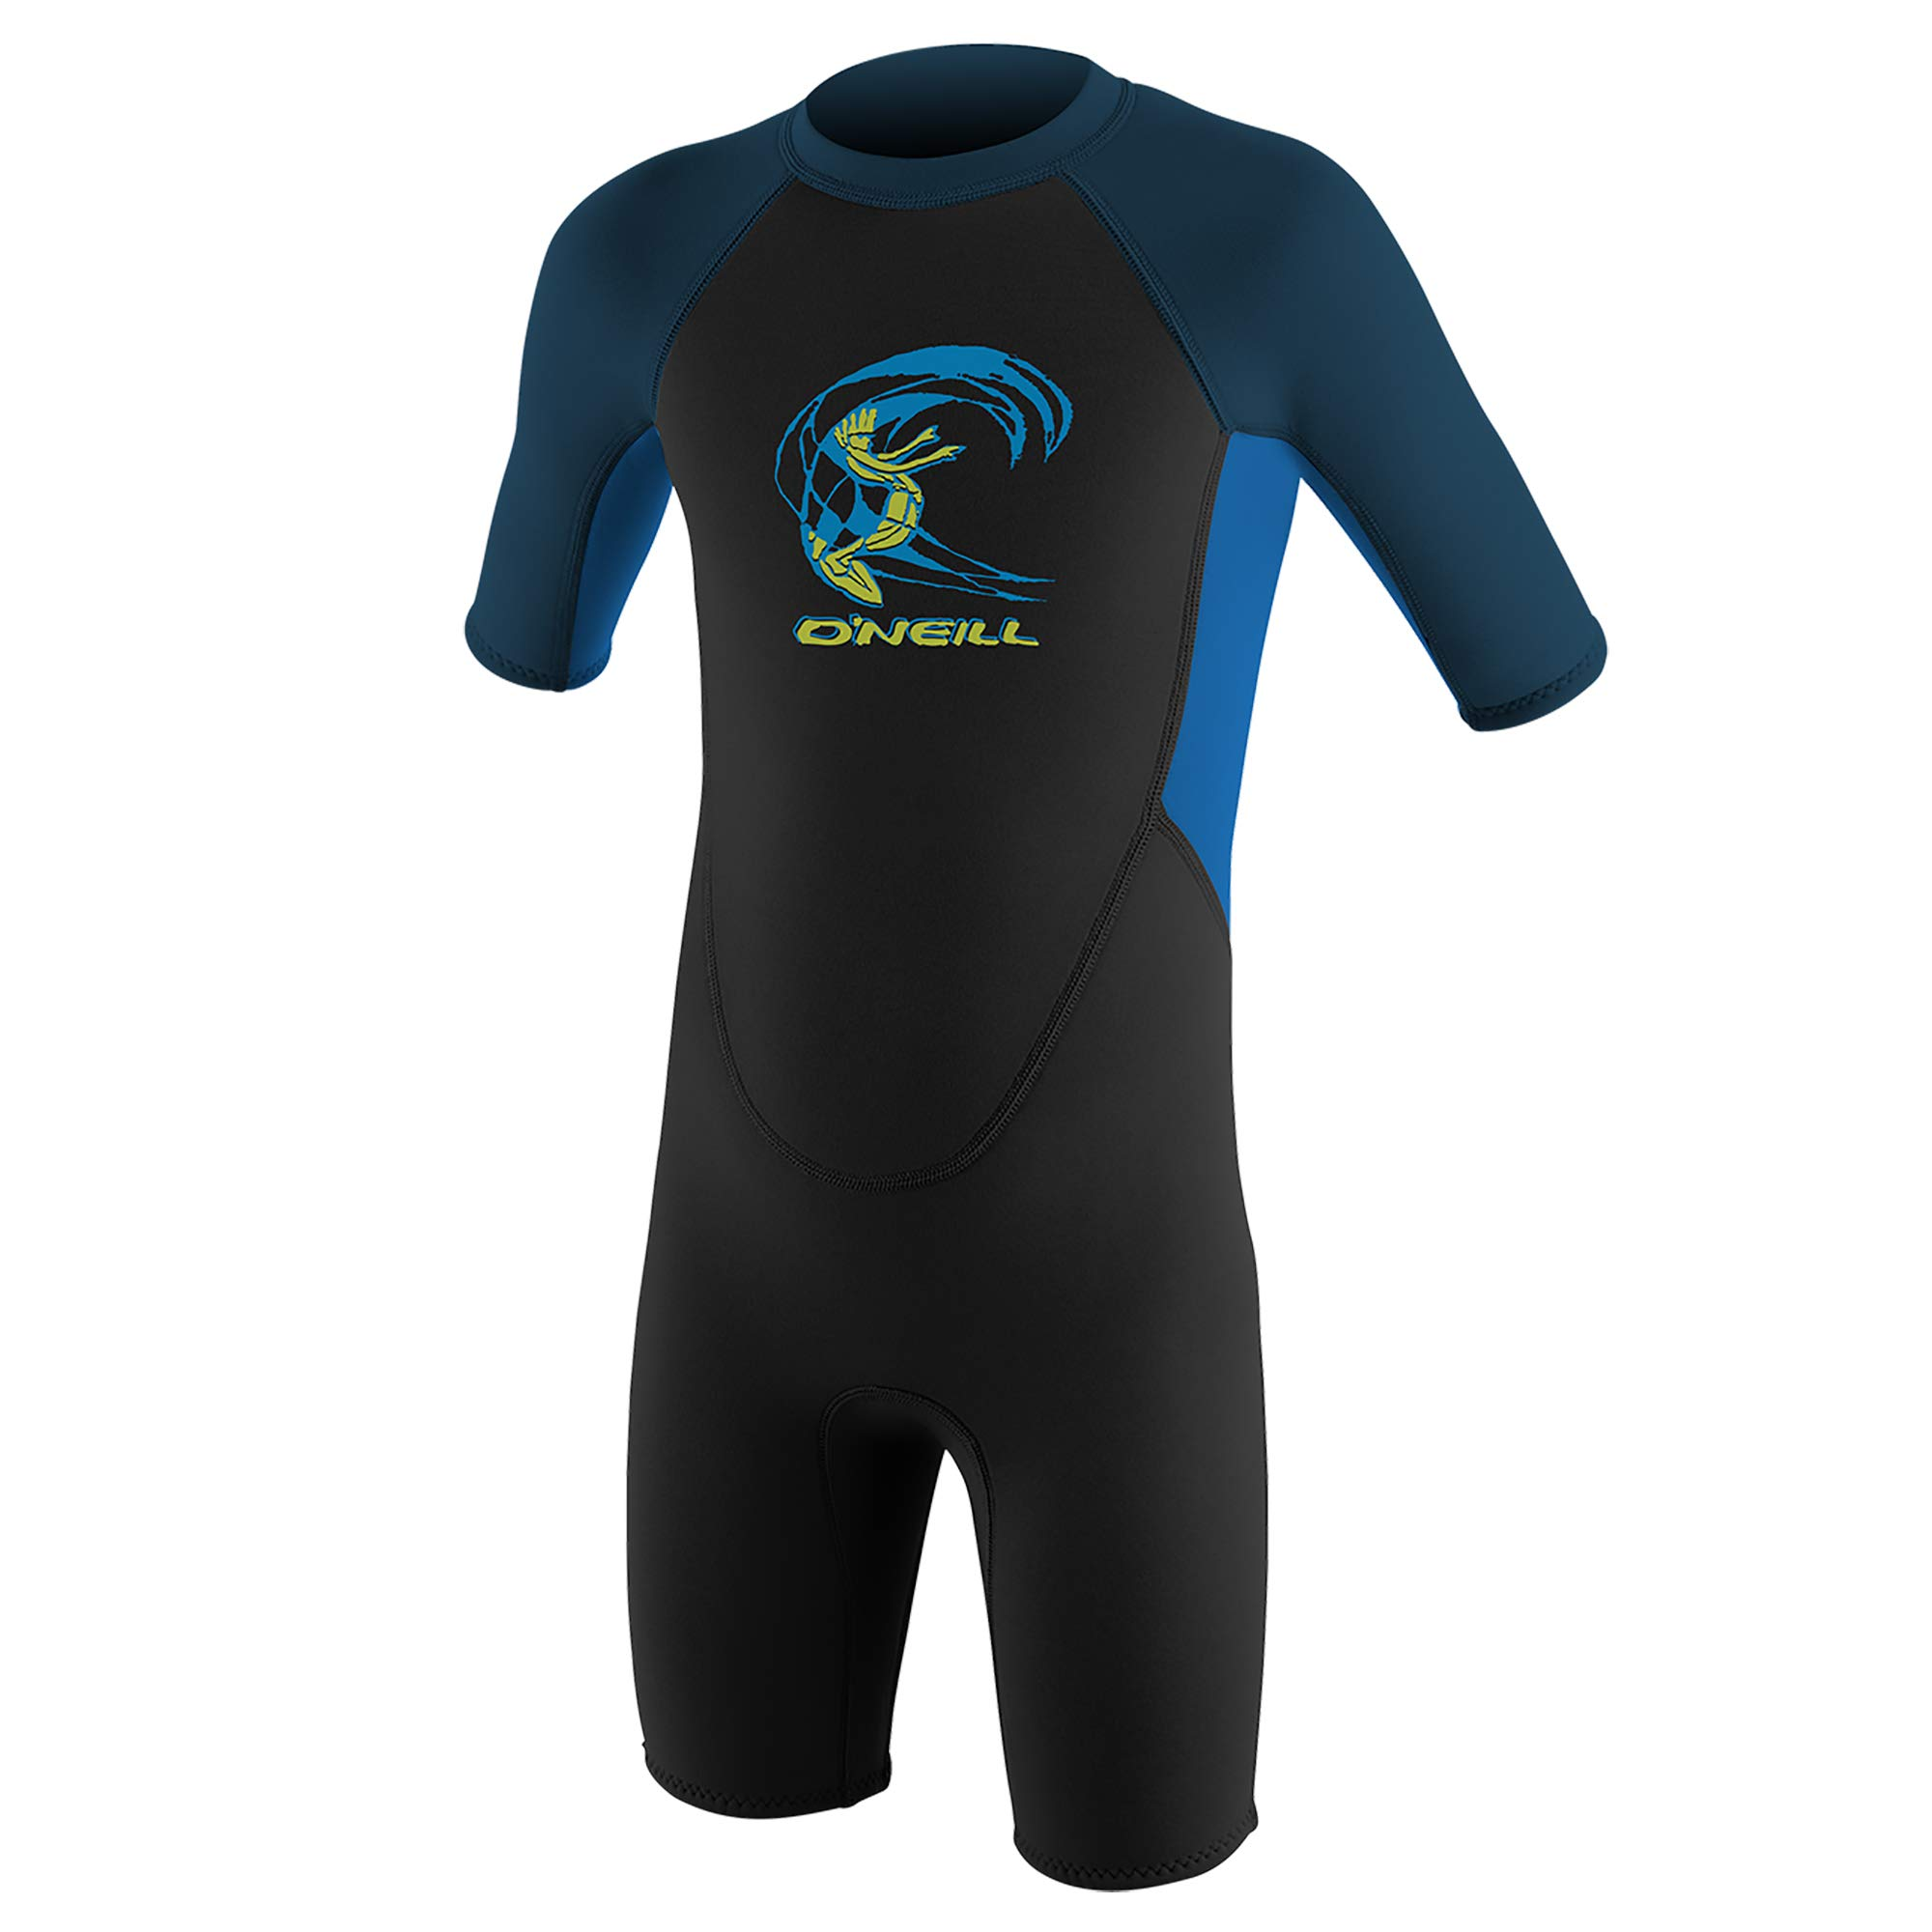 O'Neill Wetsuits Toddler Reactor-2 2mm Back Zip Short Sleeve Spring, Black/Ocean/Slate, Size 4 by O'Neill Wetsuits